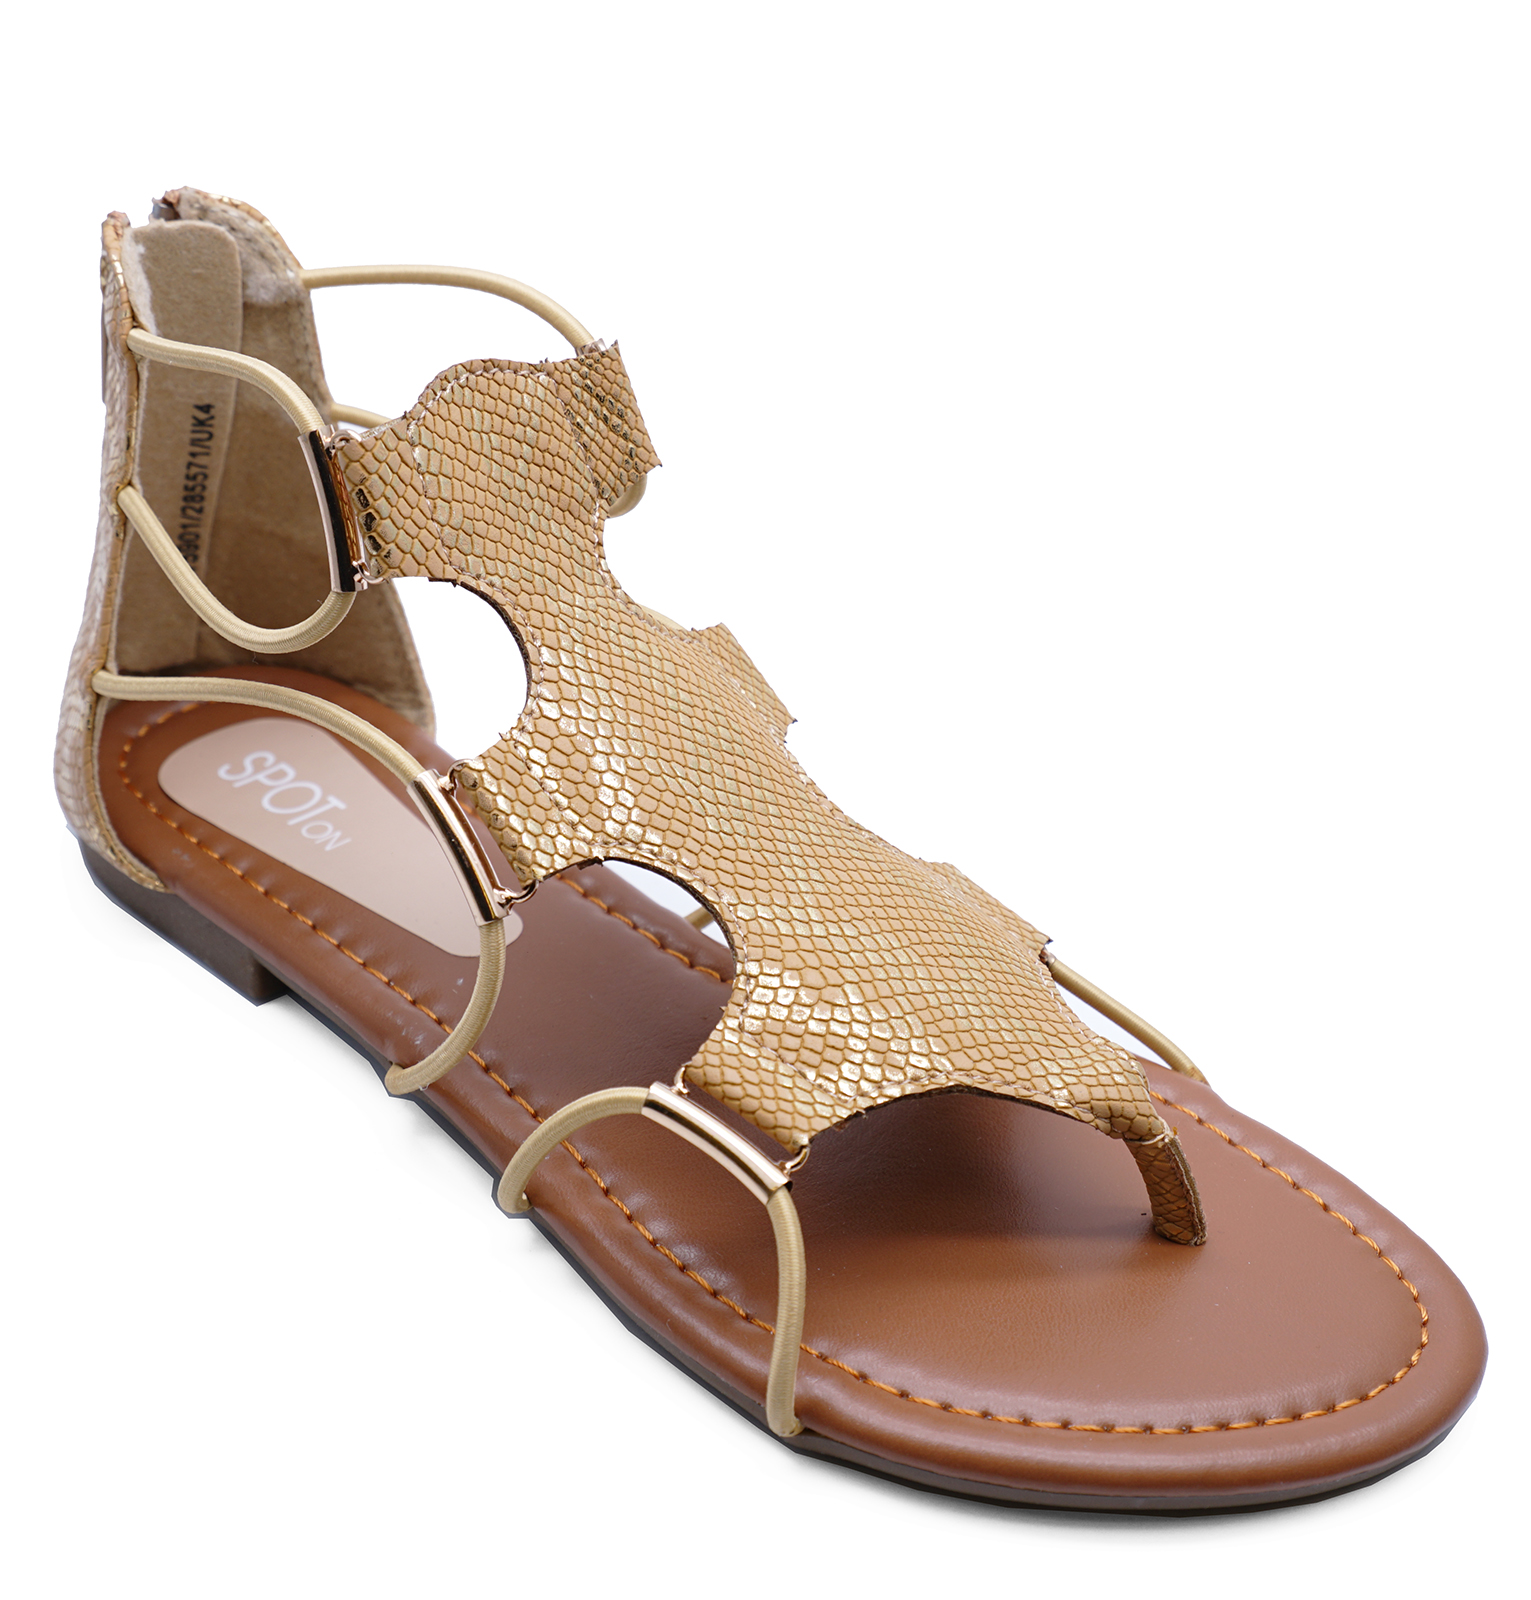 0fae71beff880 Sentinel LADIES GOLD FLAT STRAPPY ZIP-UP GLADIATOR SUMMER SANDALS FLIP-FLOP  SHOES UK 3